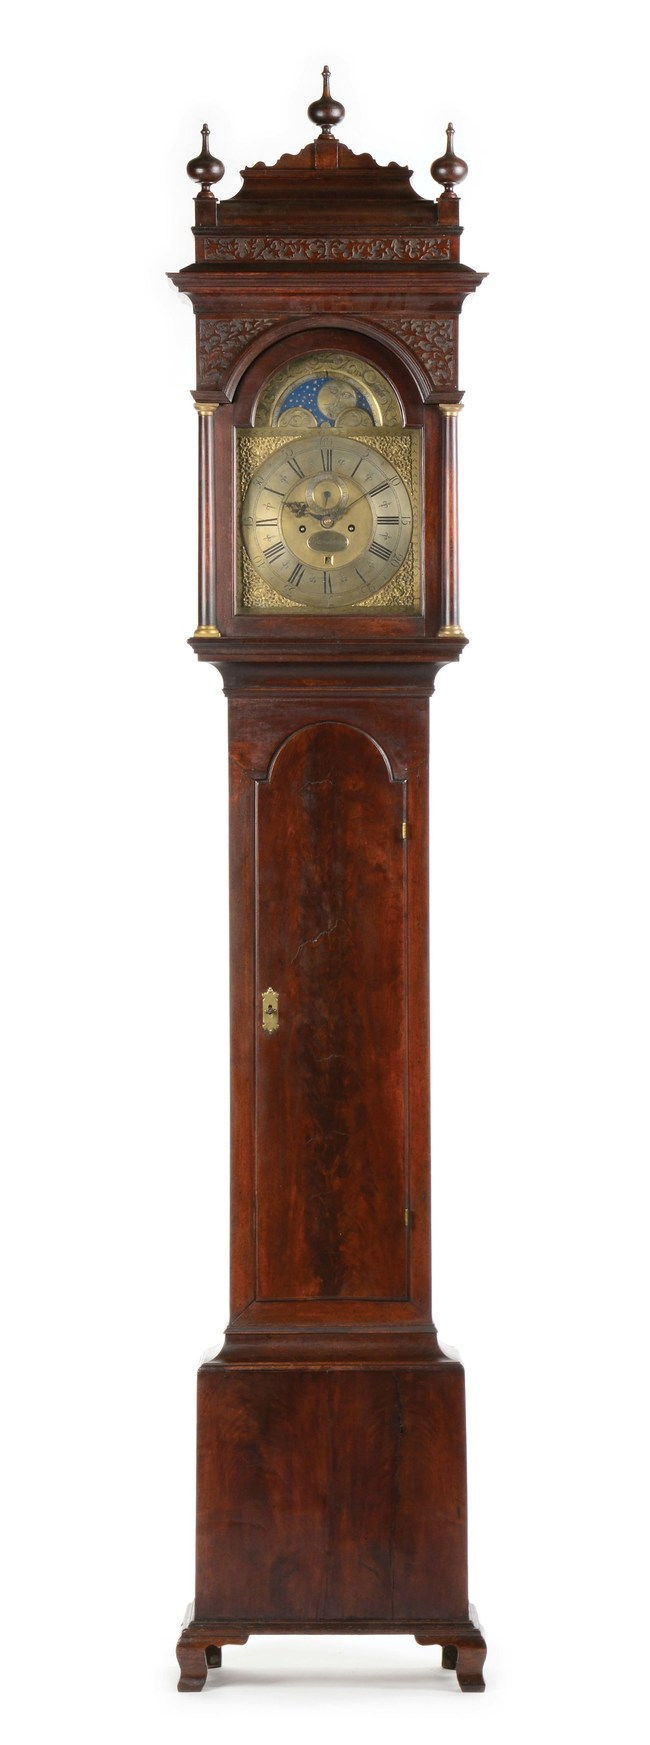 Circa-1740 Philadelphia tall-case 8-day moon-phase clock signed by Peter Stretch. Earliest known clock of its type with ogee feet. Sold for $166,050, more than twice the high estimate